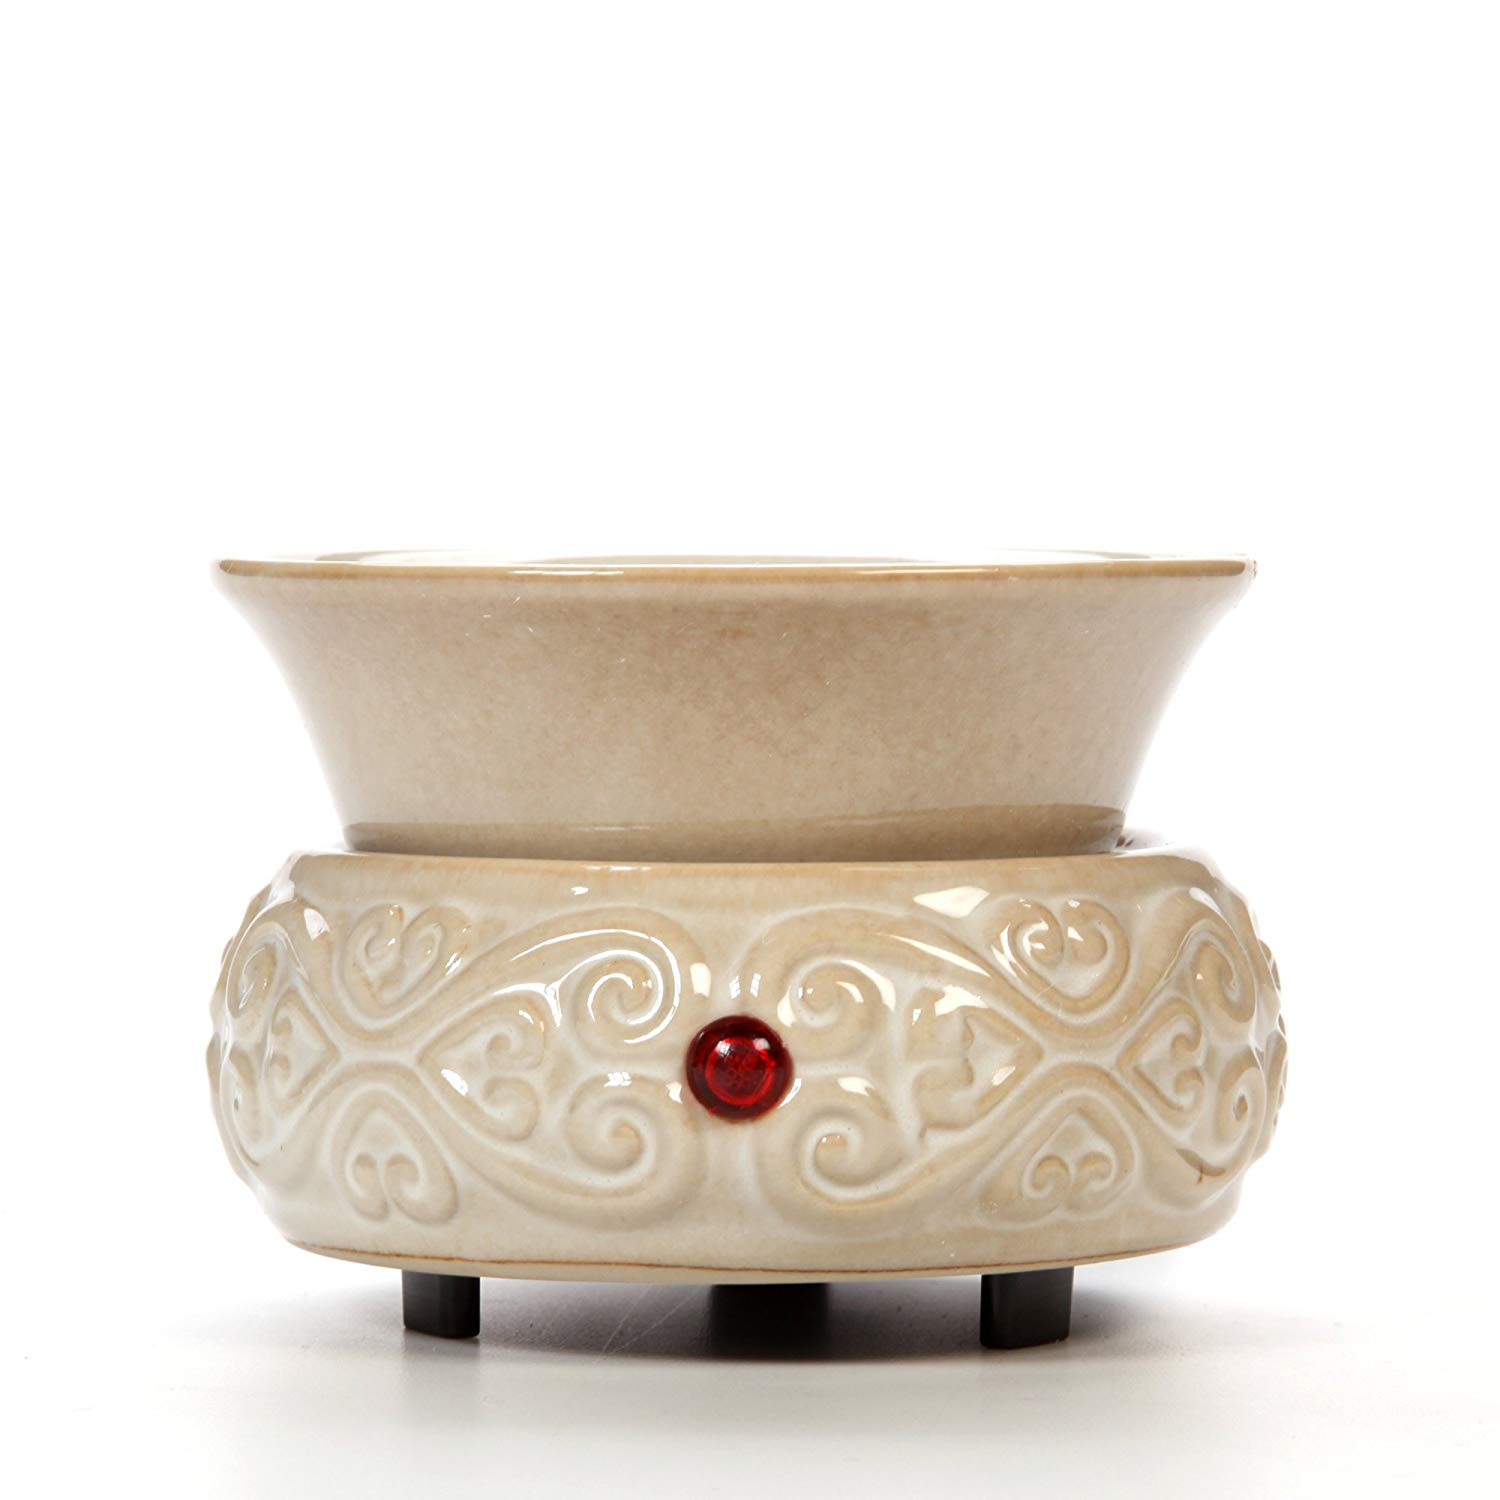 7. Hosley Hosley's Cream Ceramic Fragrance Candle Wax Warmer: